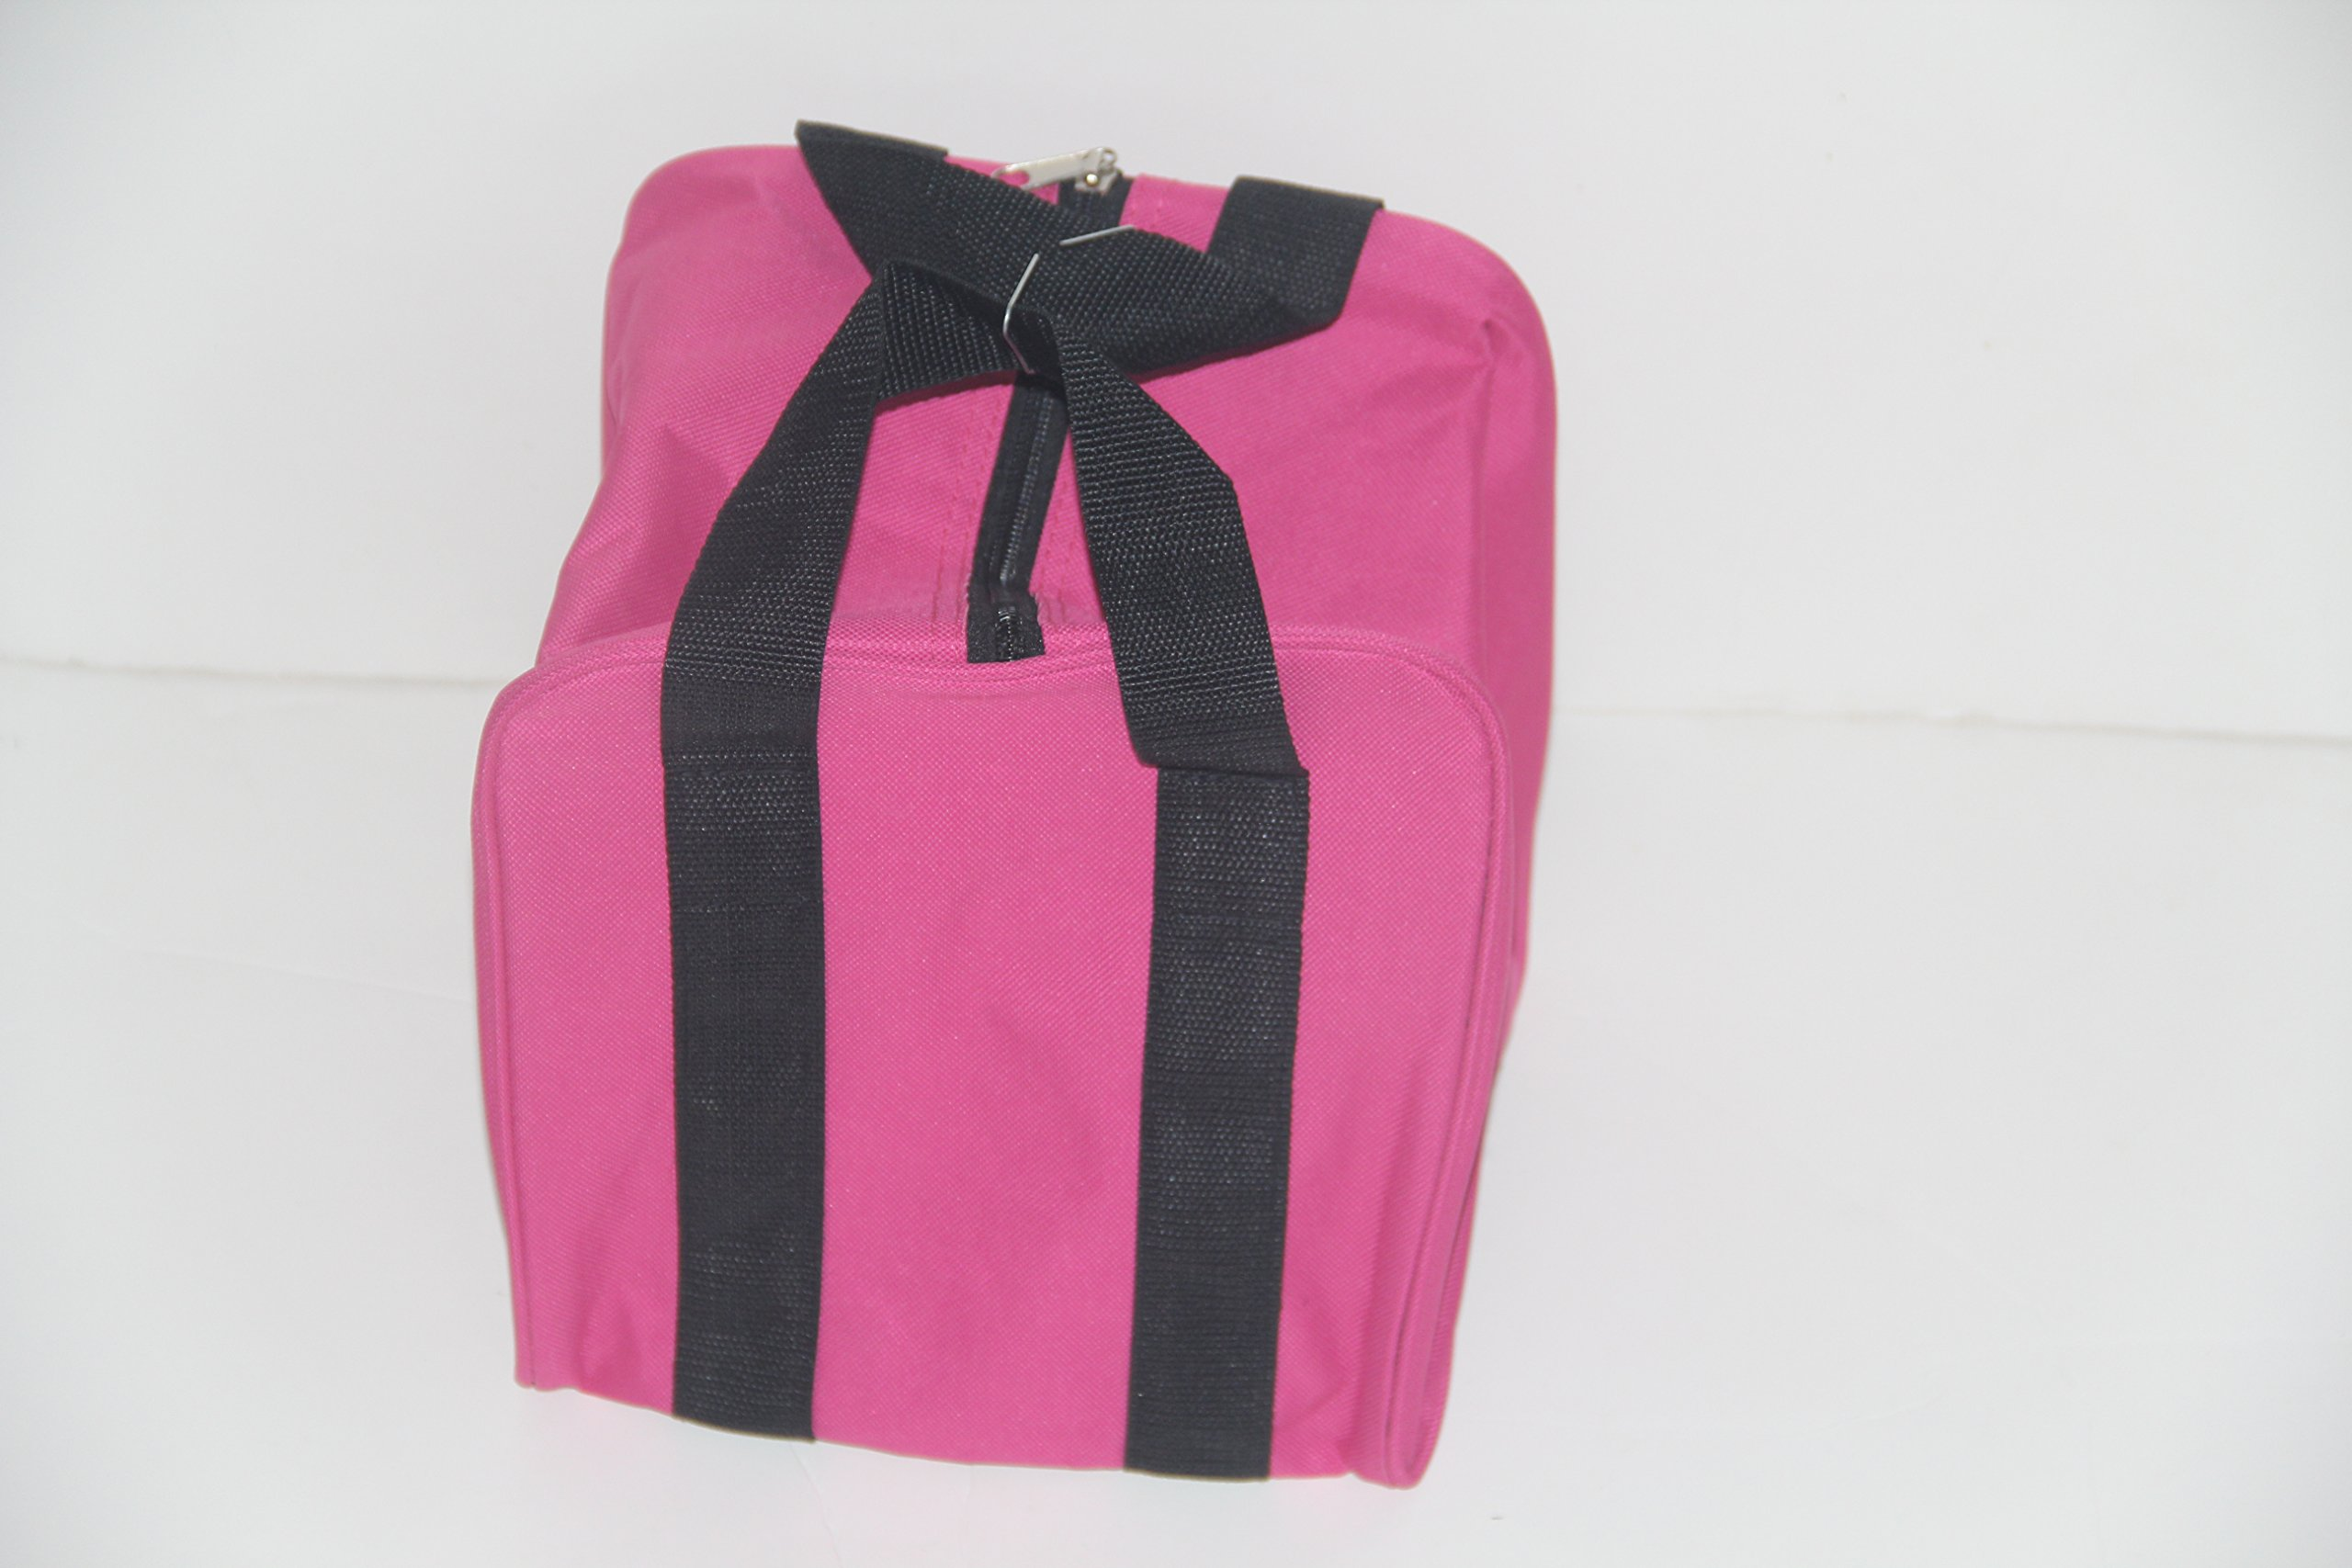 Premium Quality - Extra Heavy Duty Nylon Bocce Bag - Pink with Black Handles